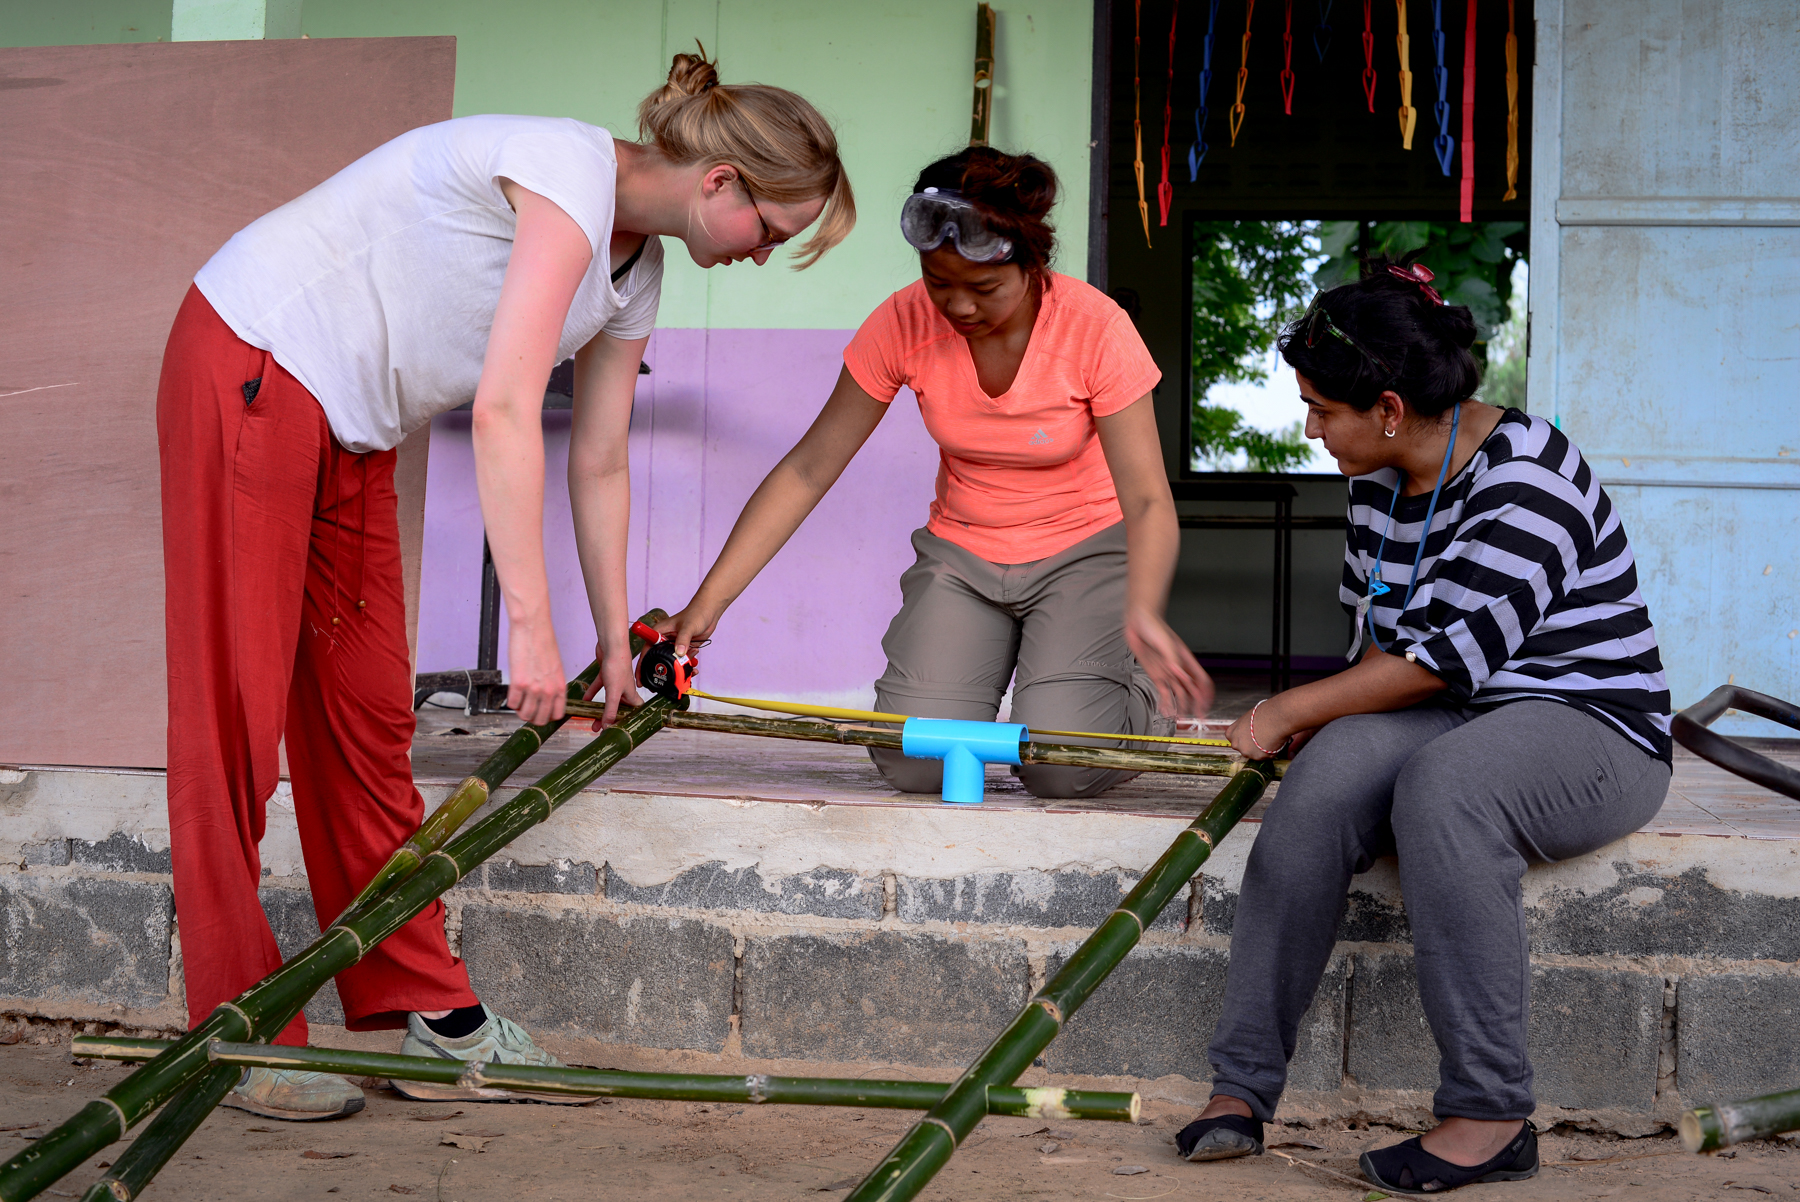 Franzi from Germany, Mint from Thailand, and Mansi from India at IDDS Sisaket in July 2017 building flipchart holders from local materials in rural Thailand.photo credit. Kendra Sharp